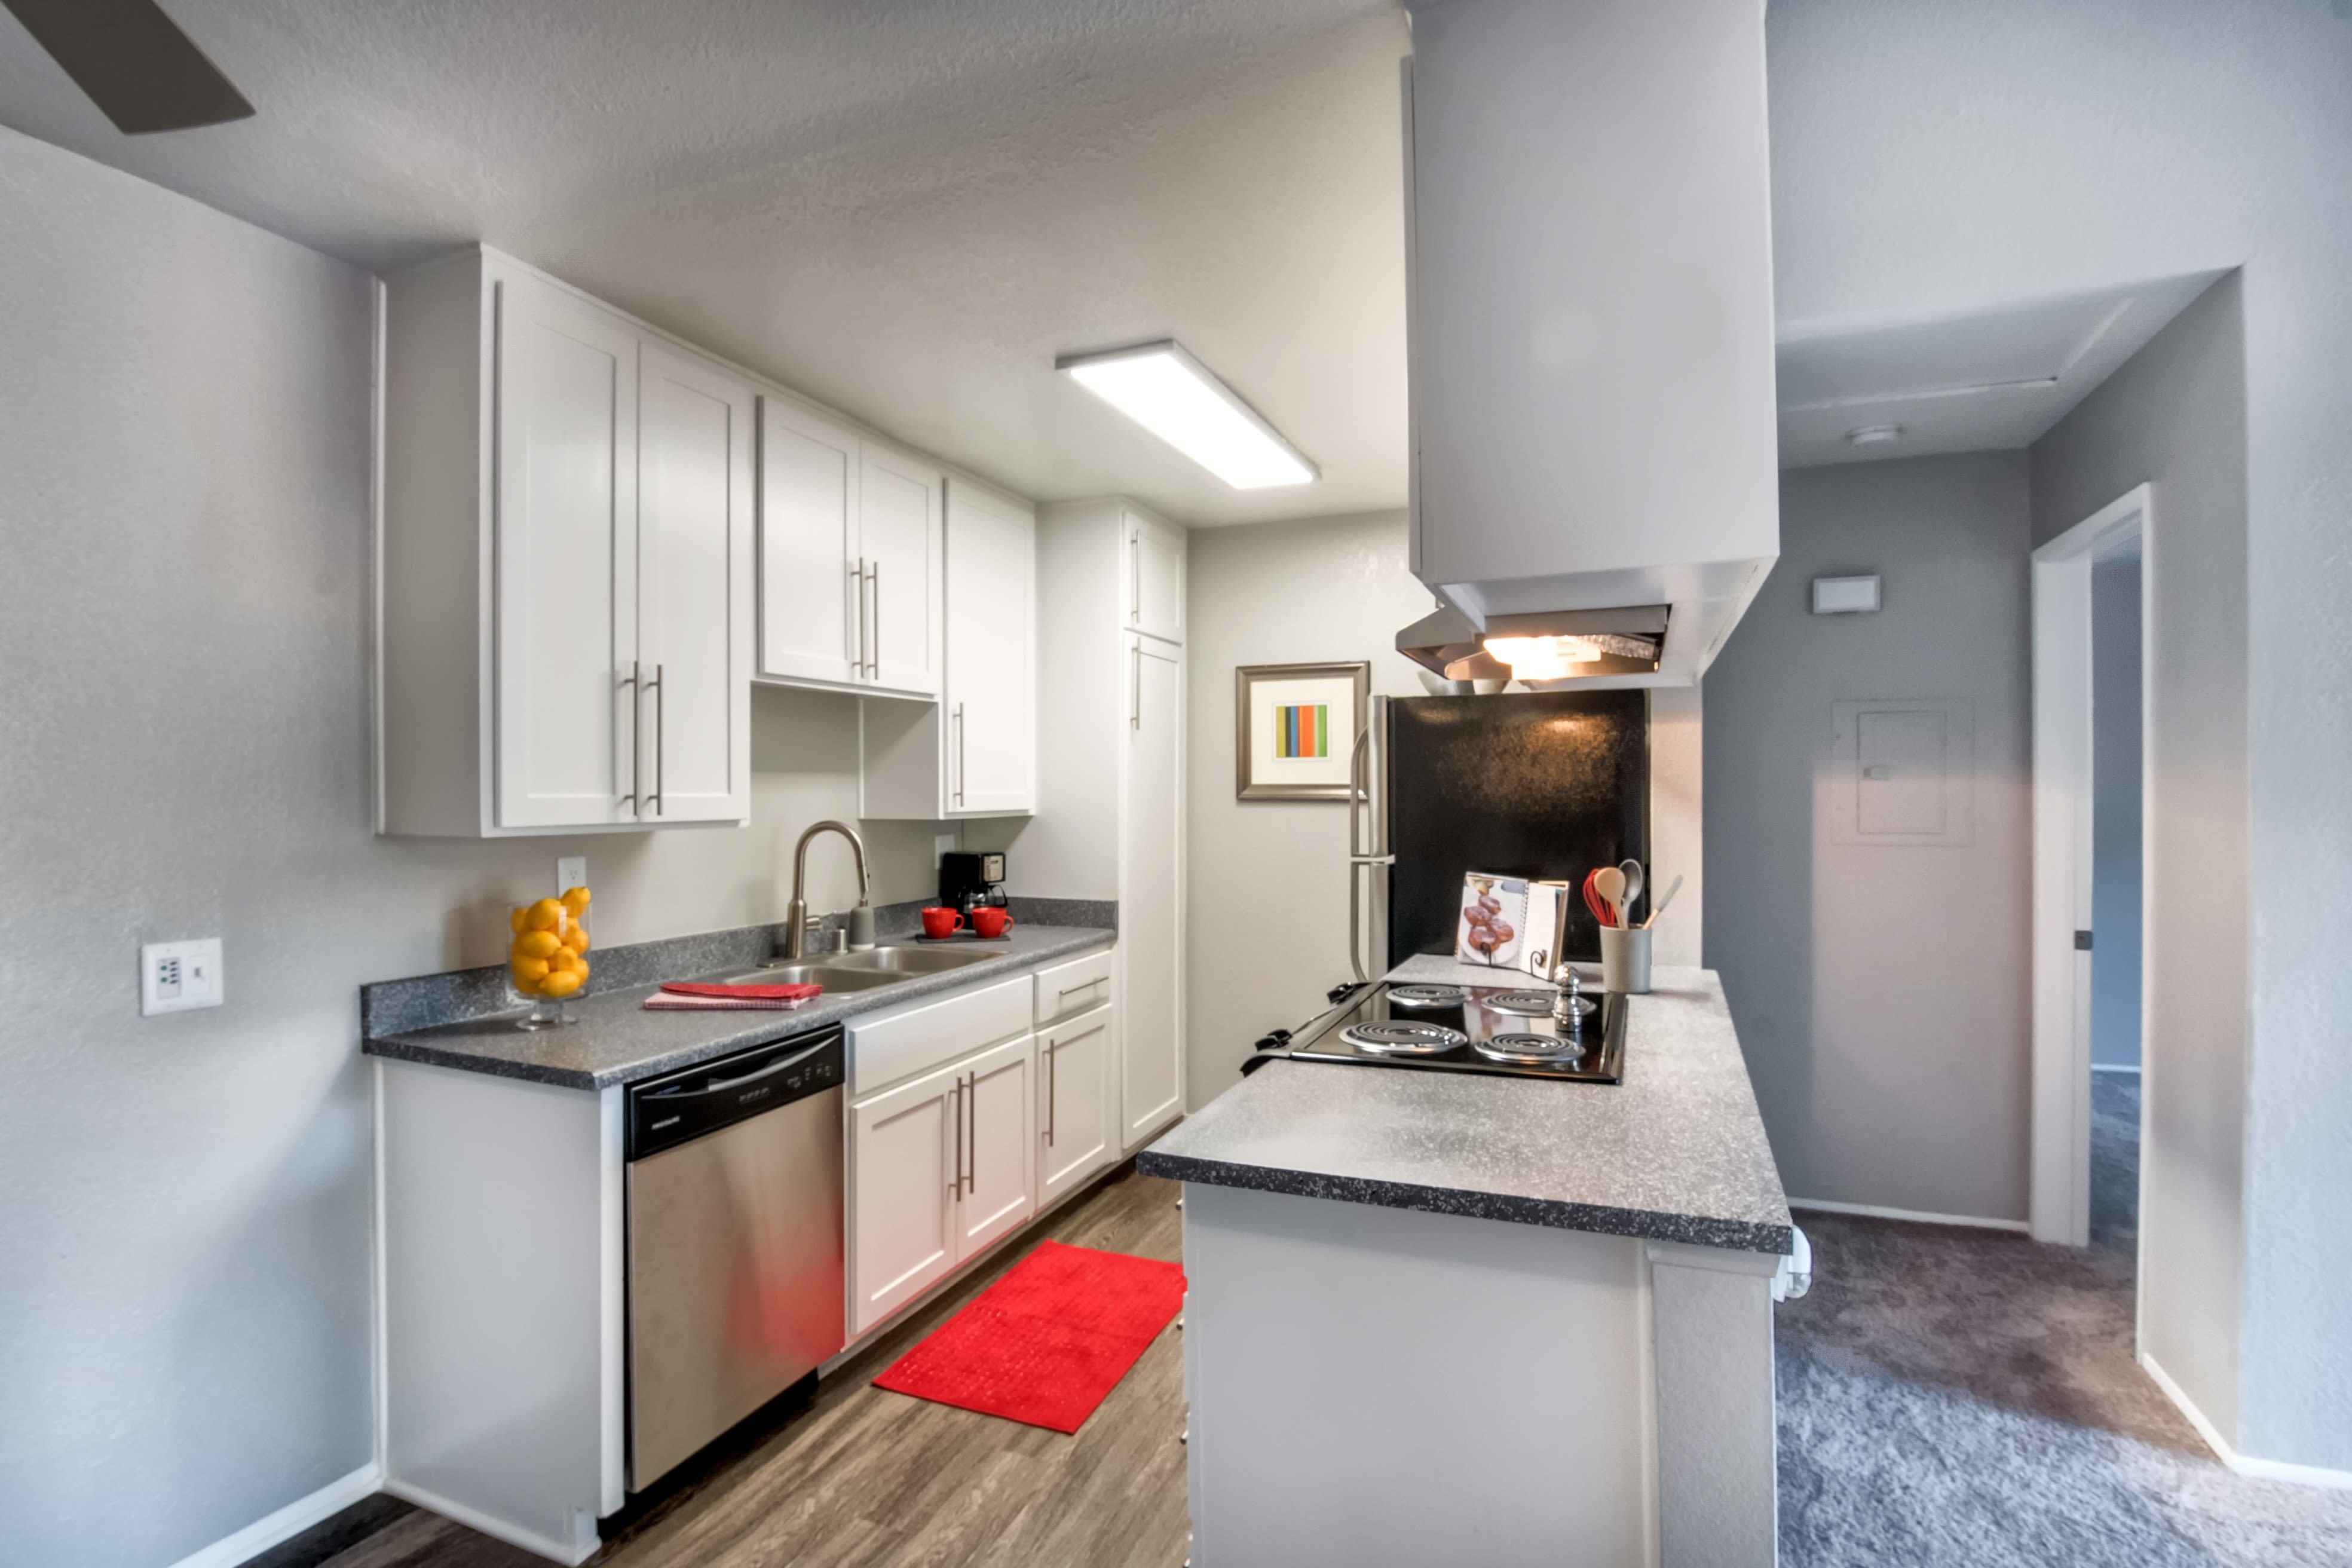 Best Affordable 1 2 Bedroom Apartments In Chula Vista Ca With Pictures